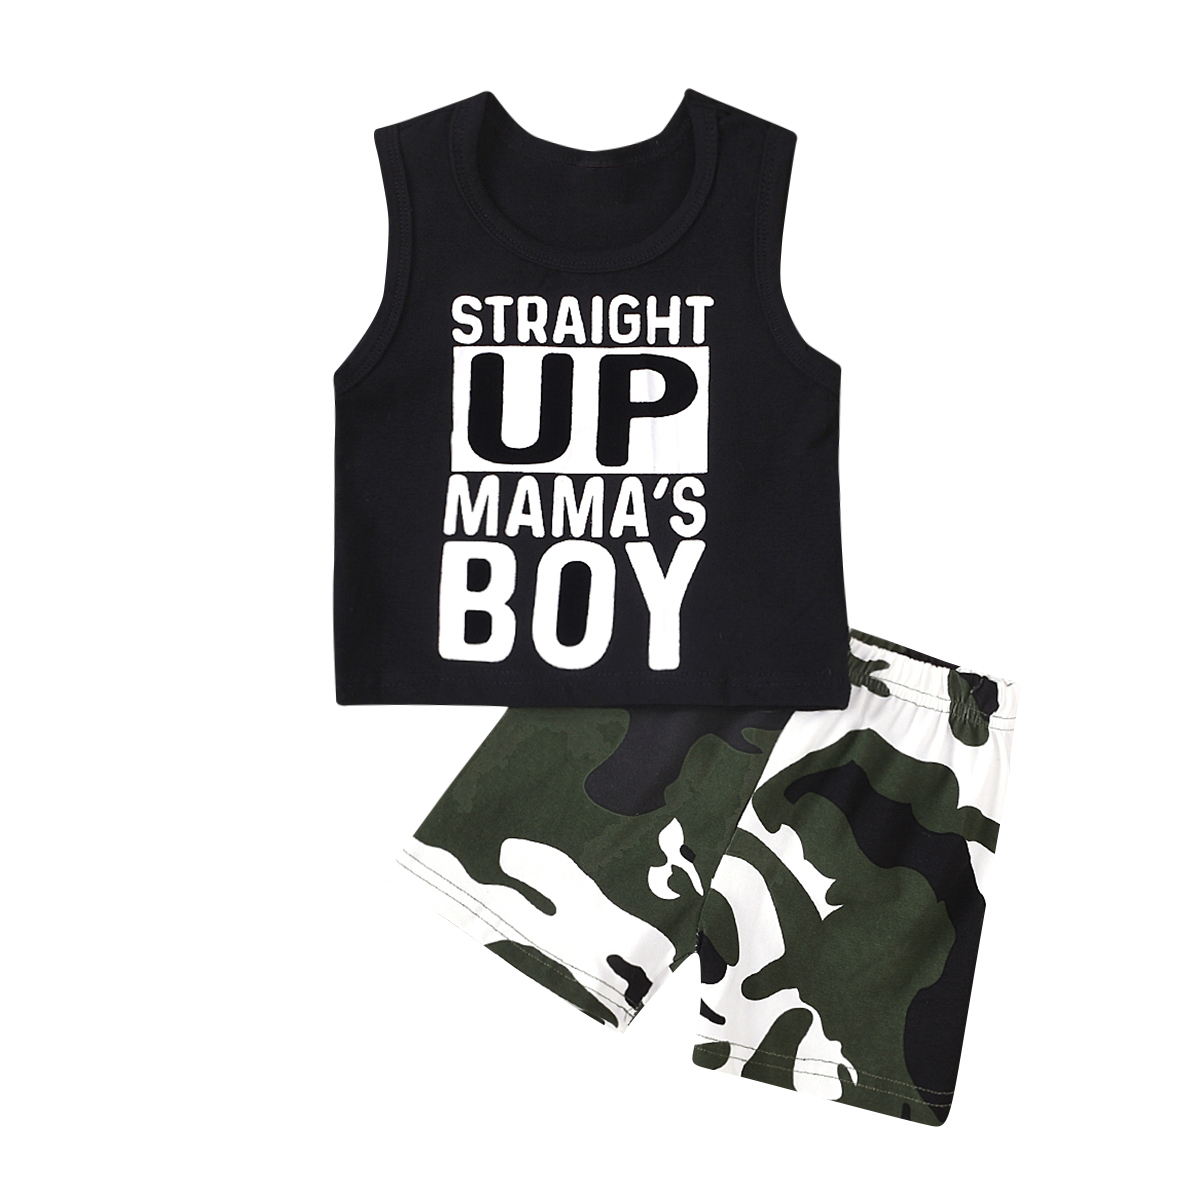 0-24M Infant Baby Kids Boys Clothes Sets Letter Print Sleeveless Vest Tops + Camouflage Shorts Outfits